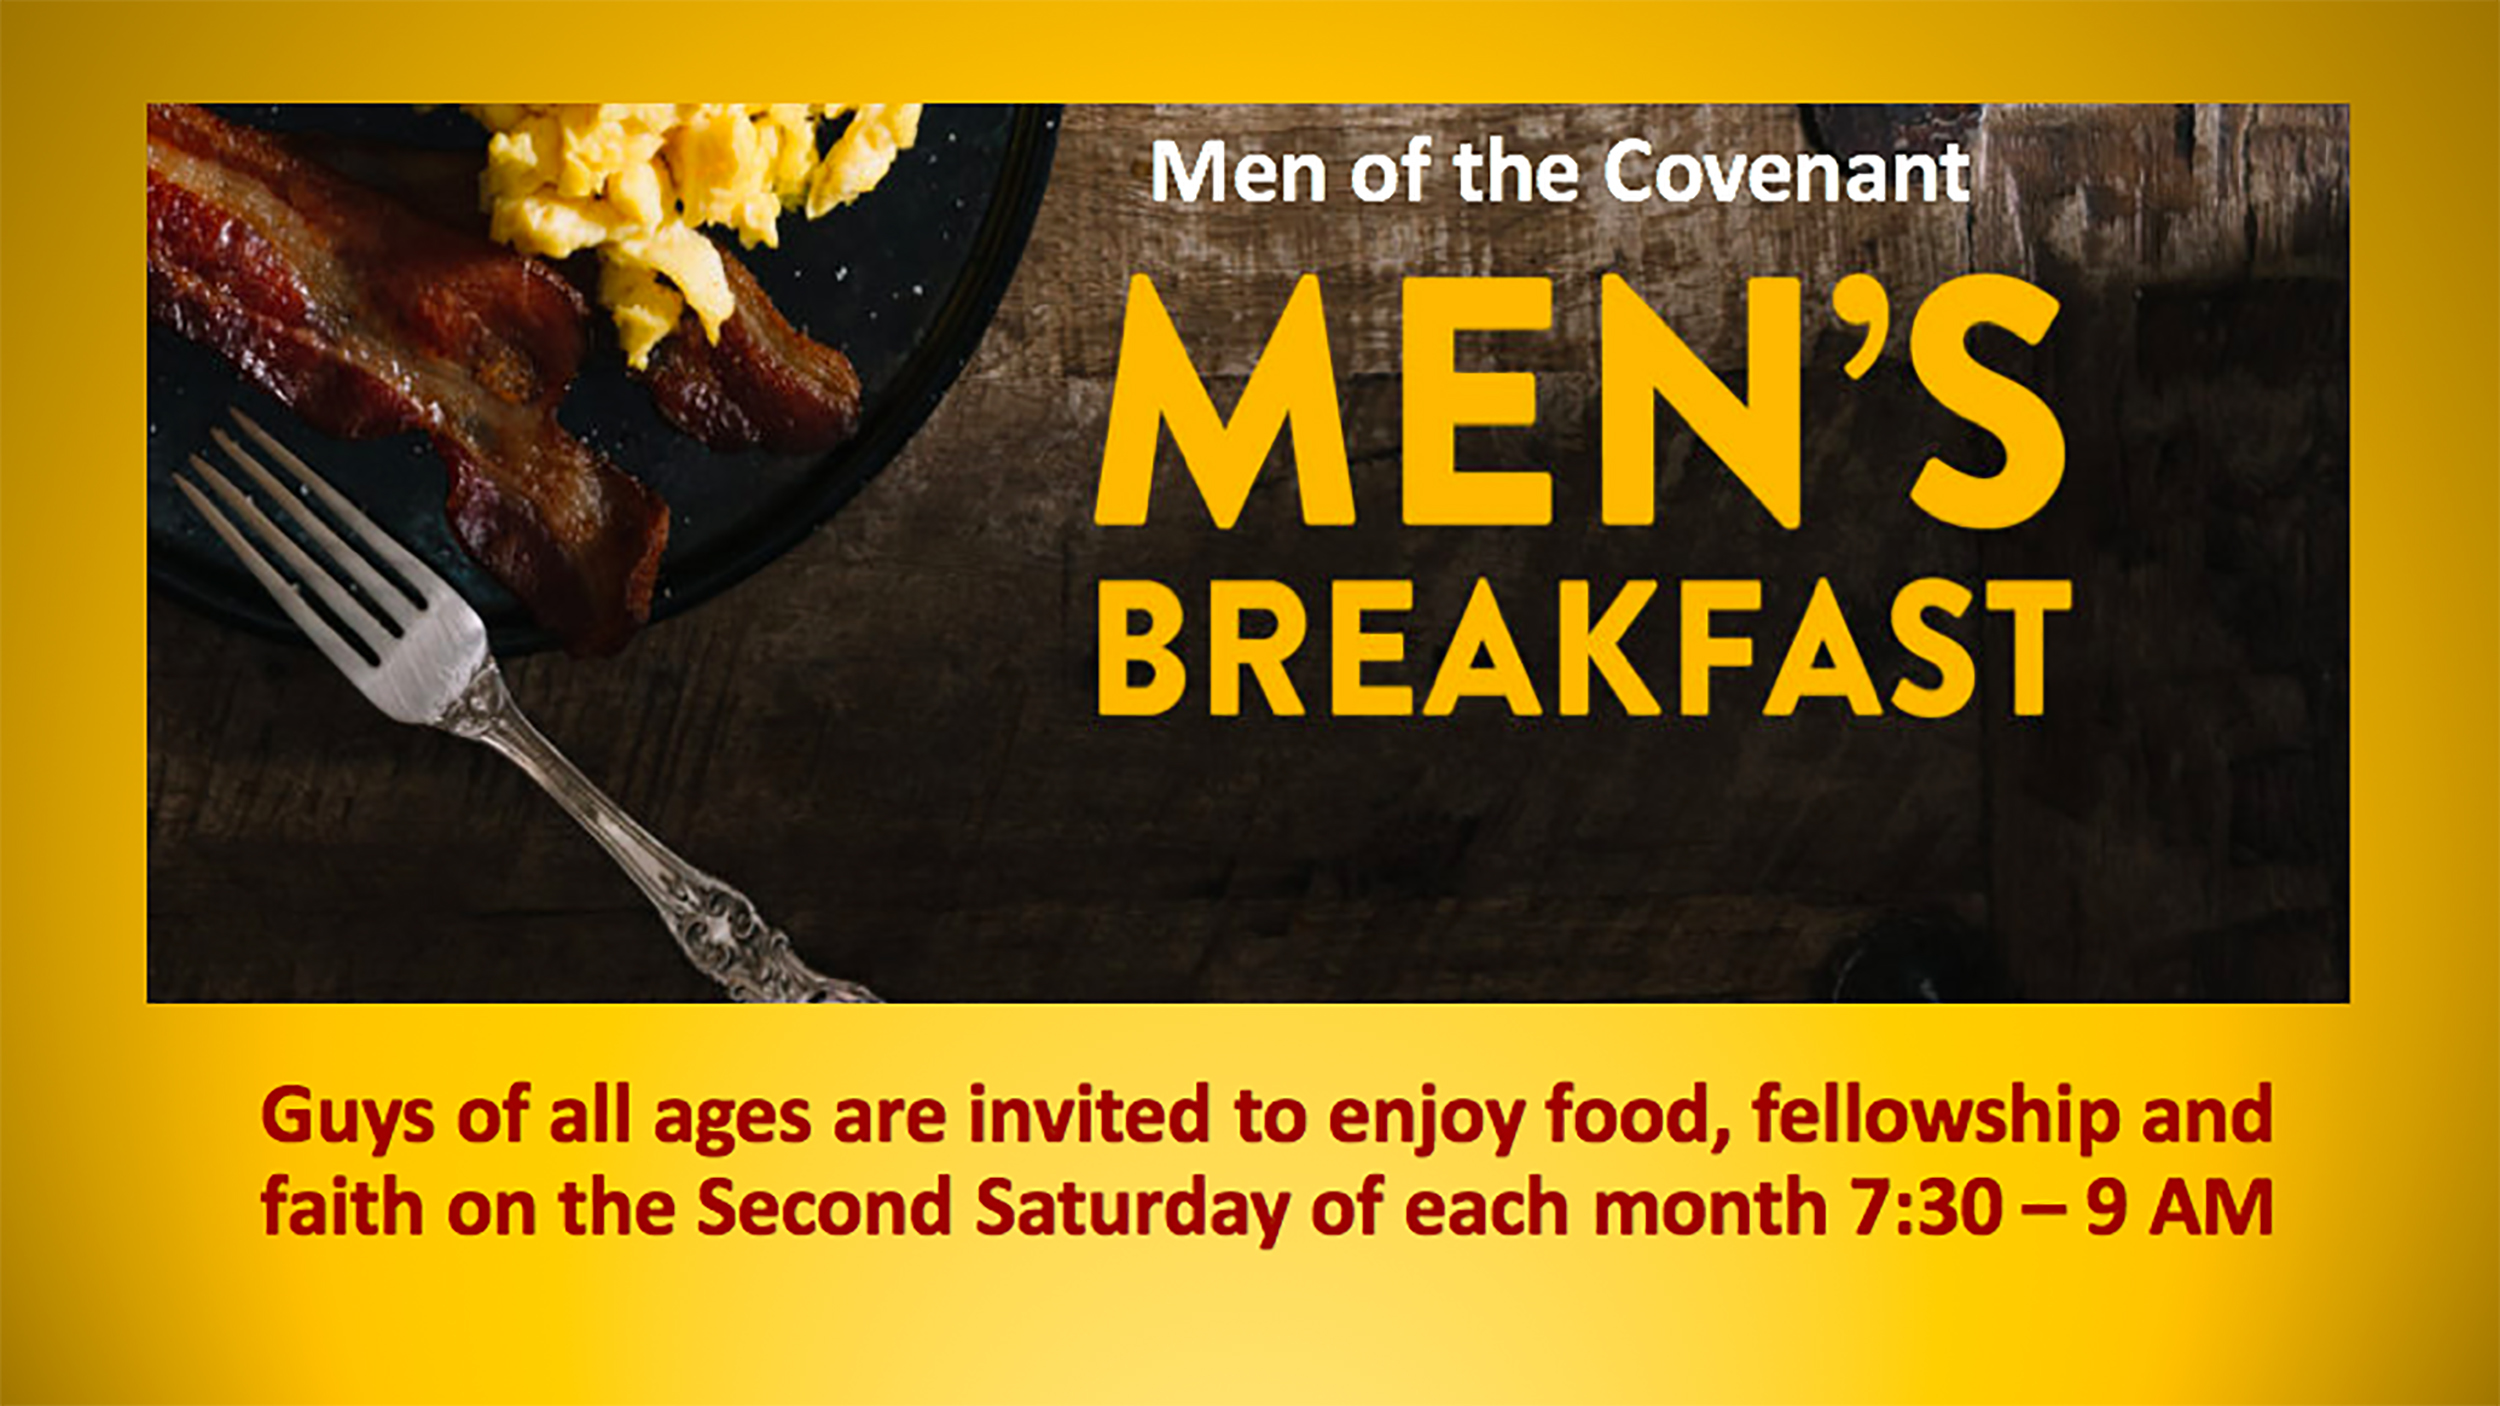 Men's Breakfast web post 2019 image